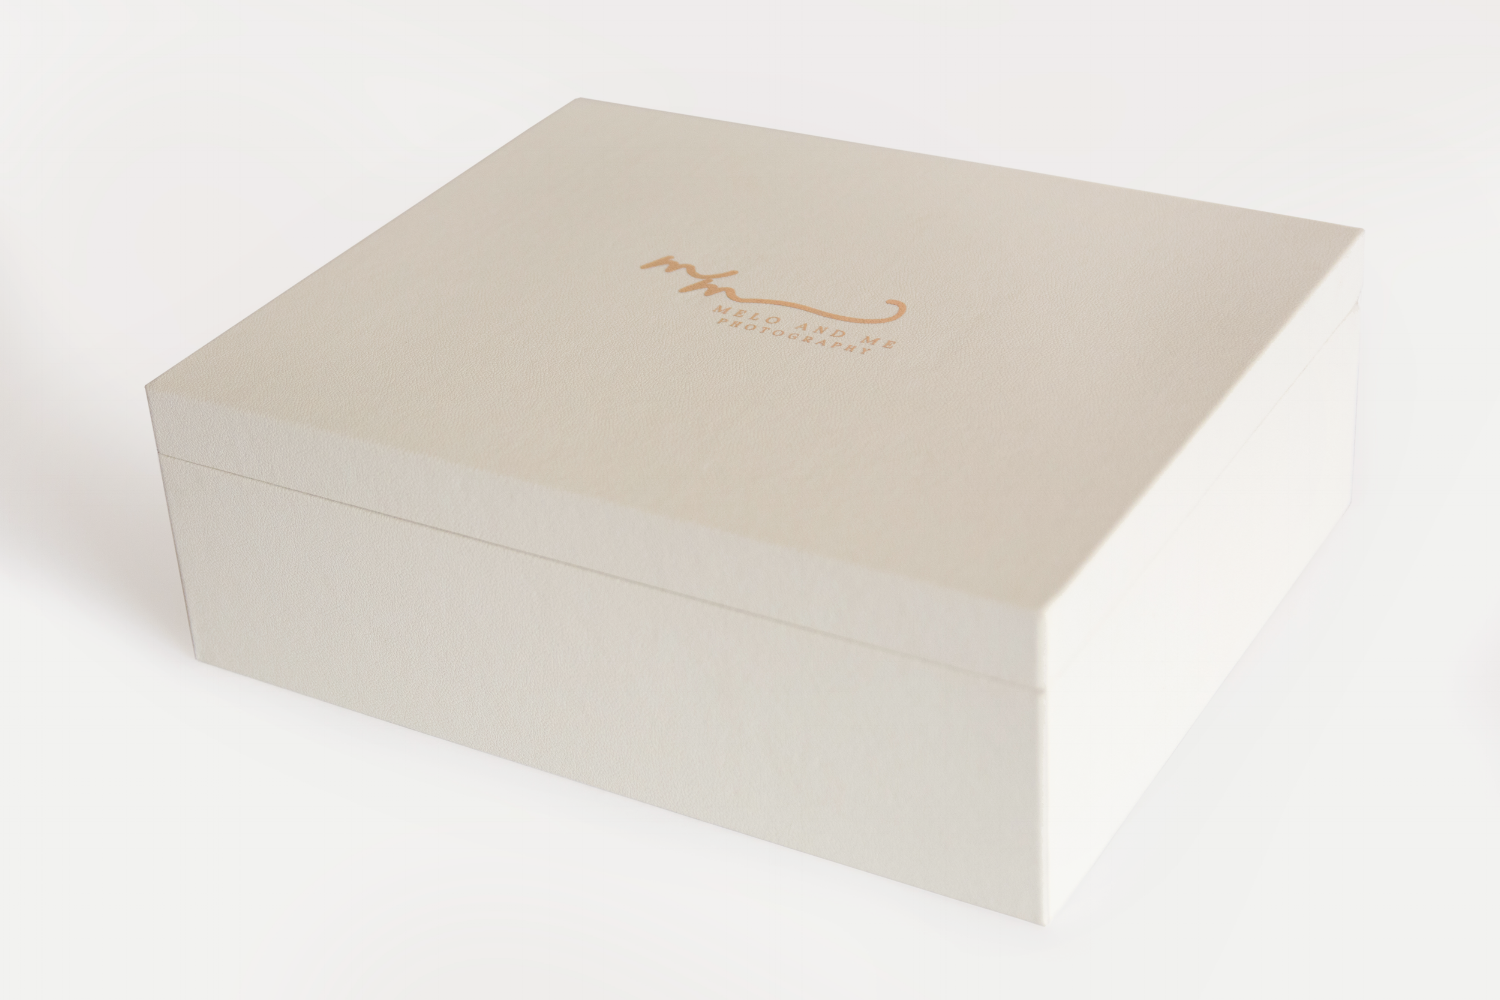 Creme colored premium box of matted prints. The perfect coffee table item for seniors, families, and weddings.